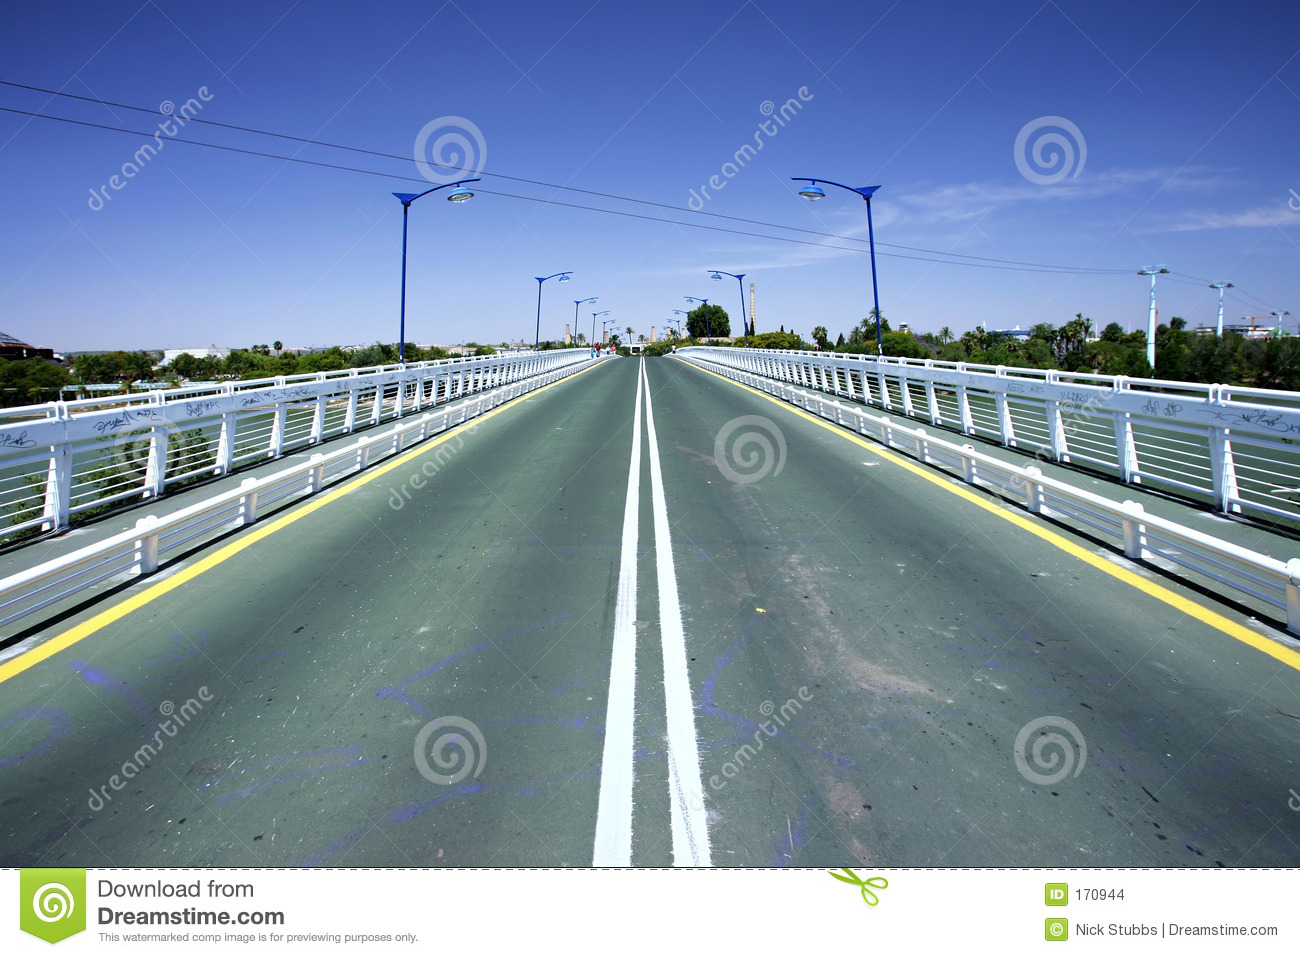 Converging lines of road on bridge